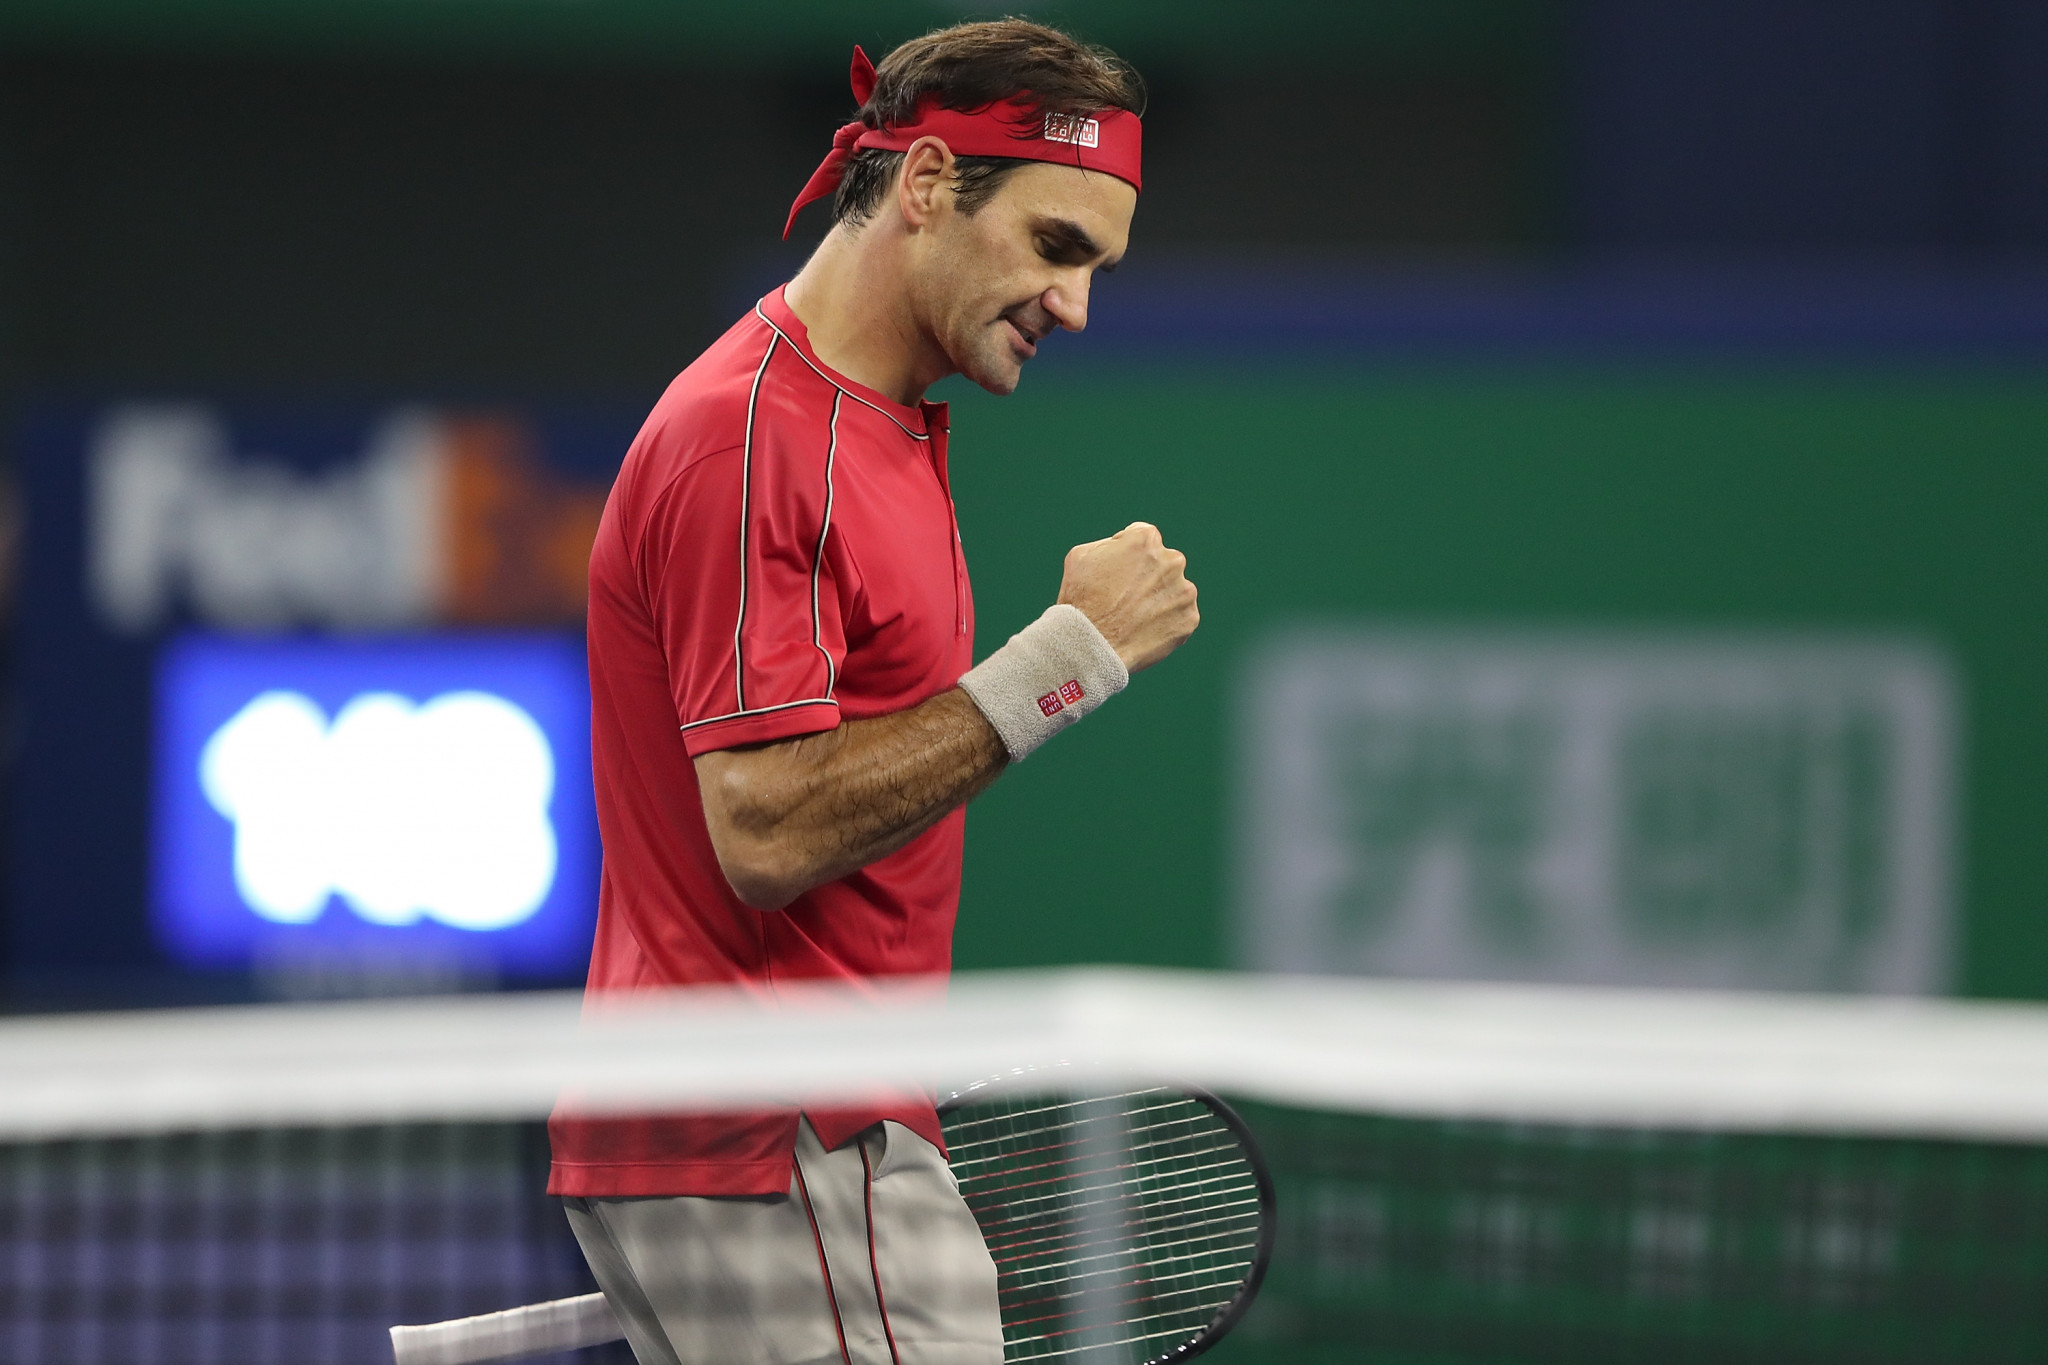 Federer avenges Ramos-Viñolas defeat at Shanghai Masters